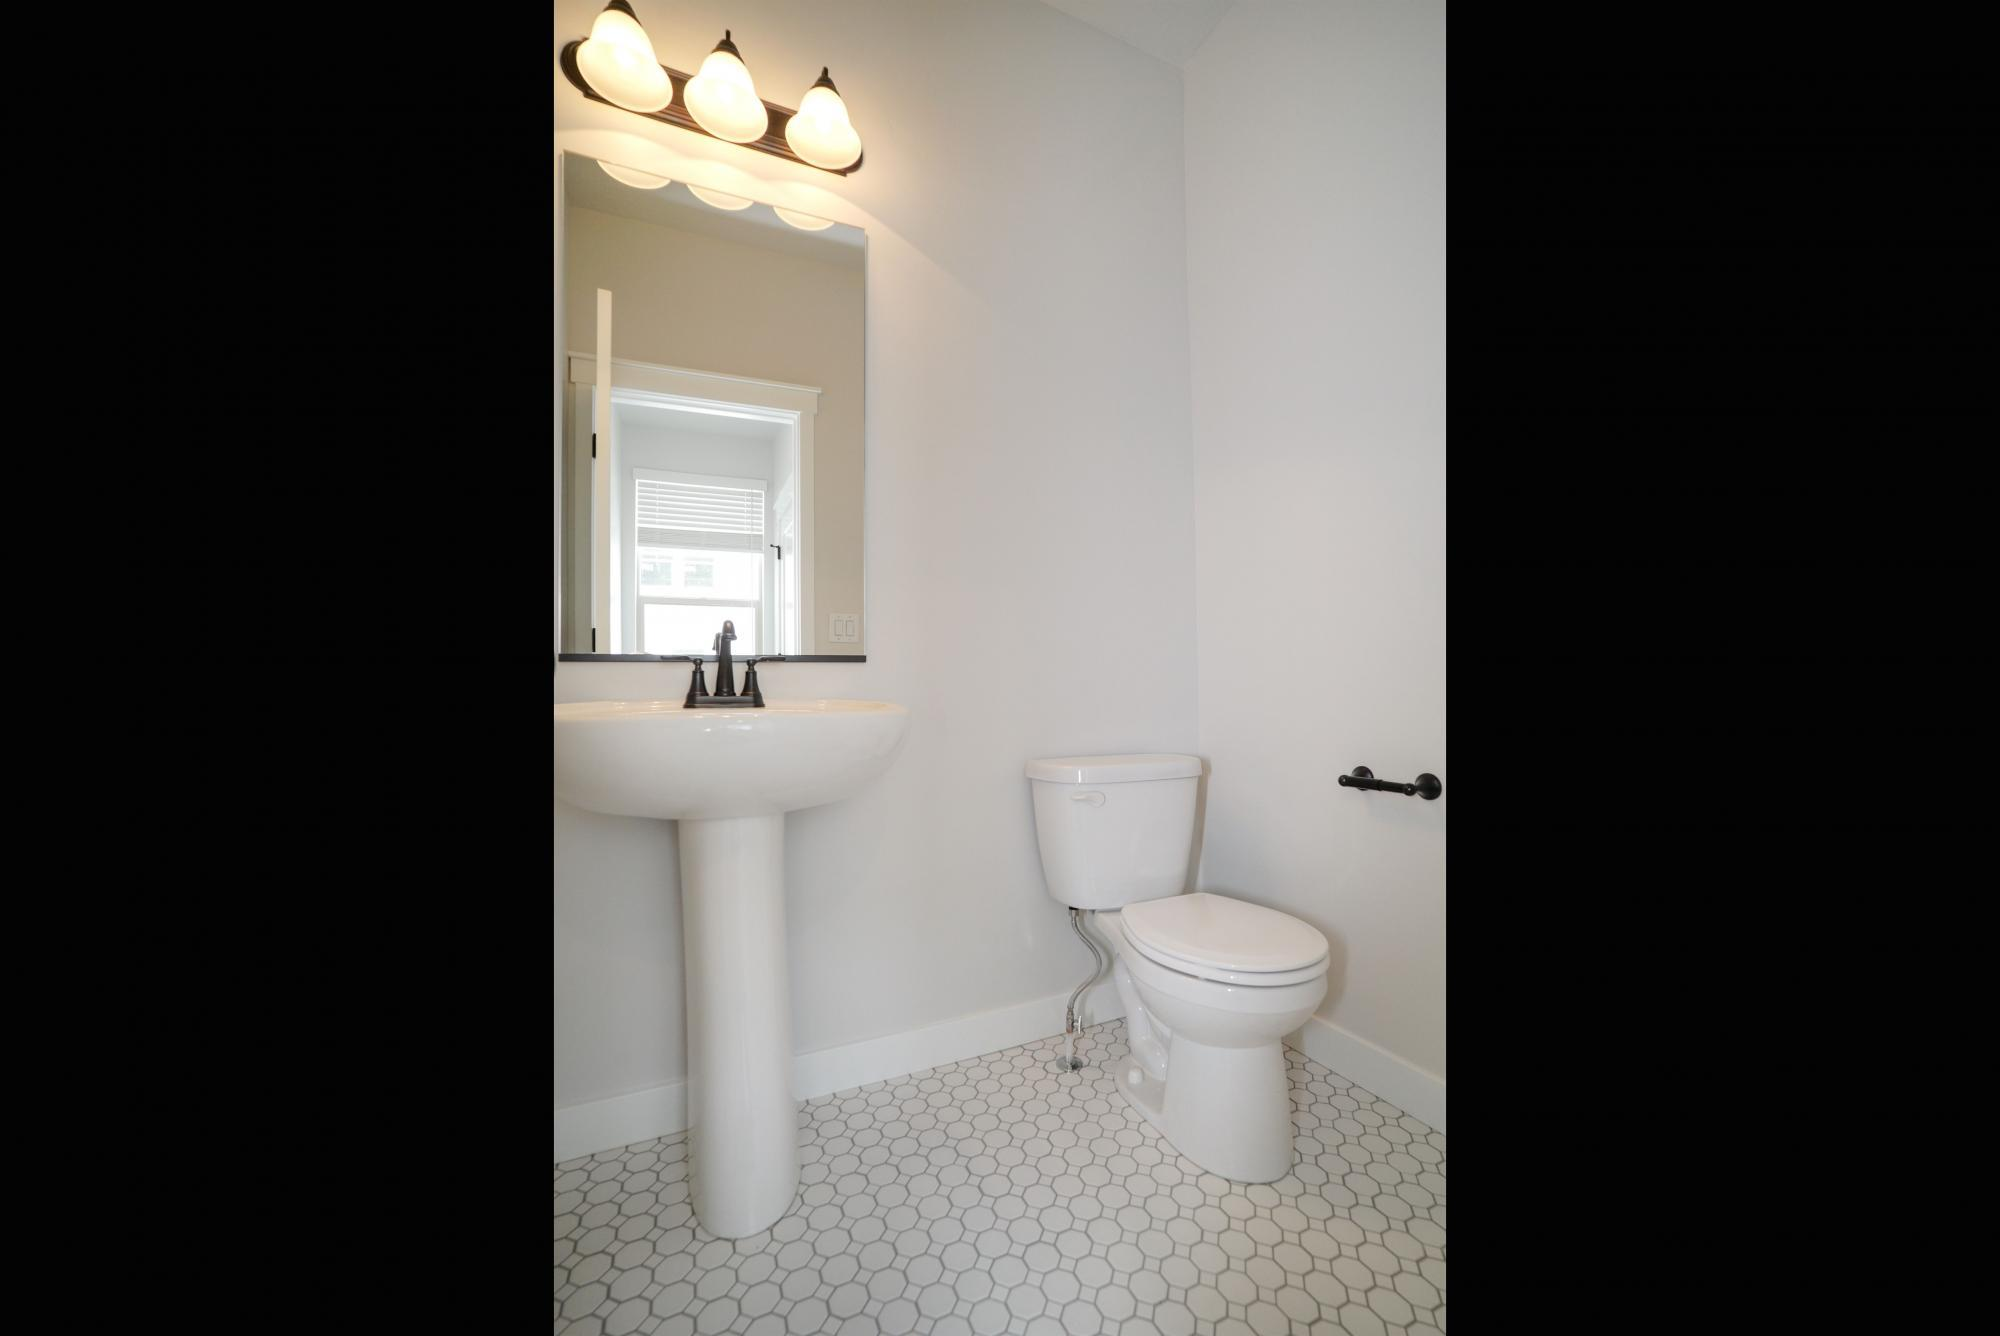 Bathroom featured in the 5803 W Lake Ave #152 By Destination Homes in Salt Lake City-Ogden, UT